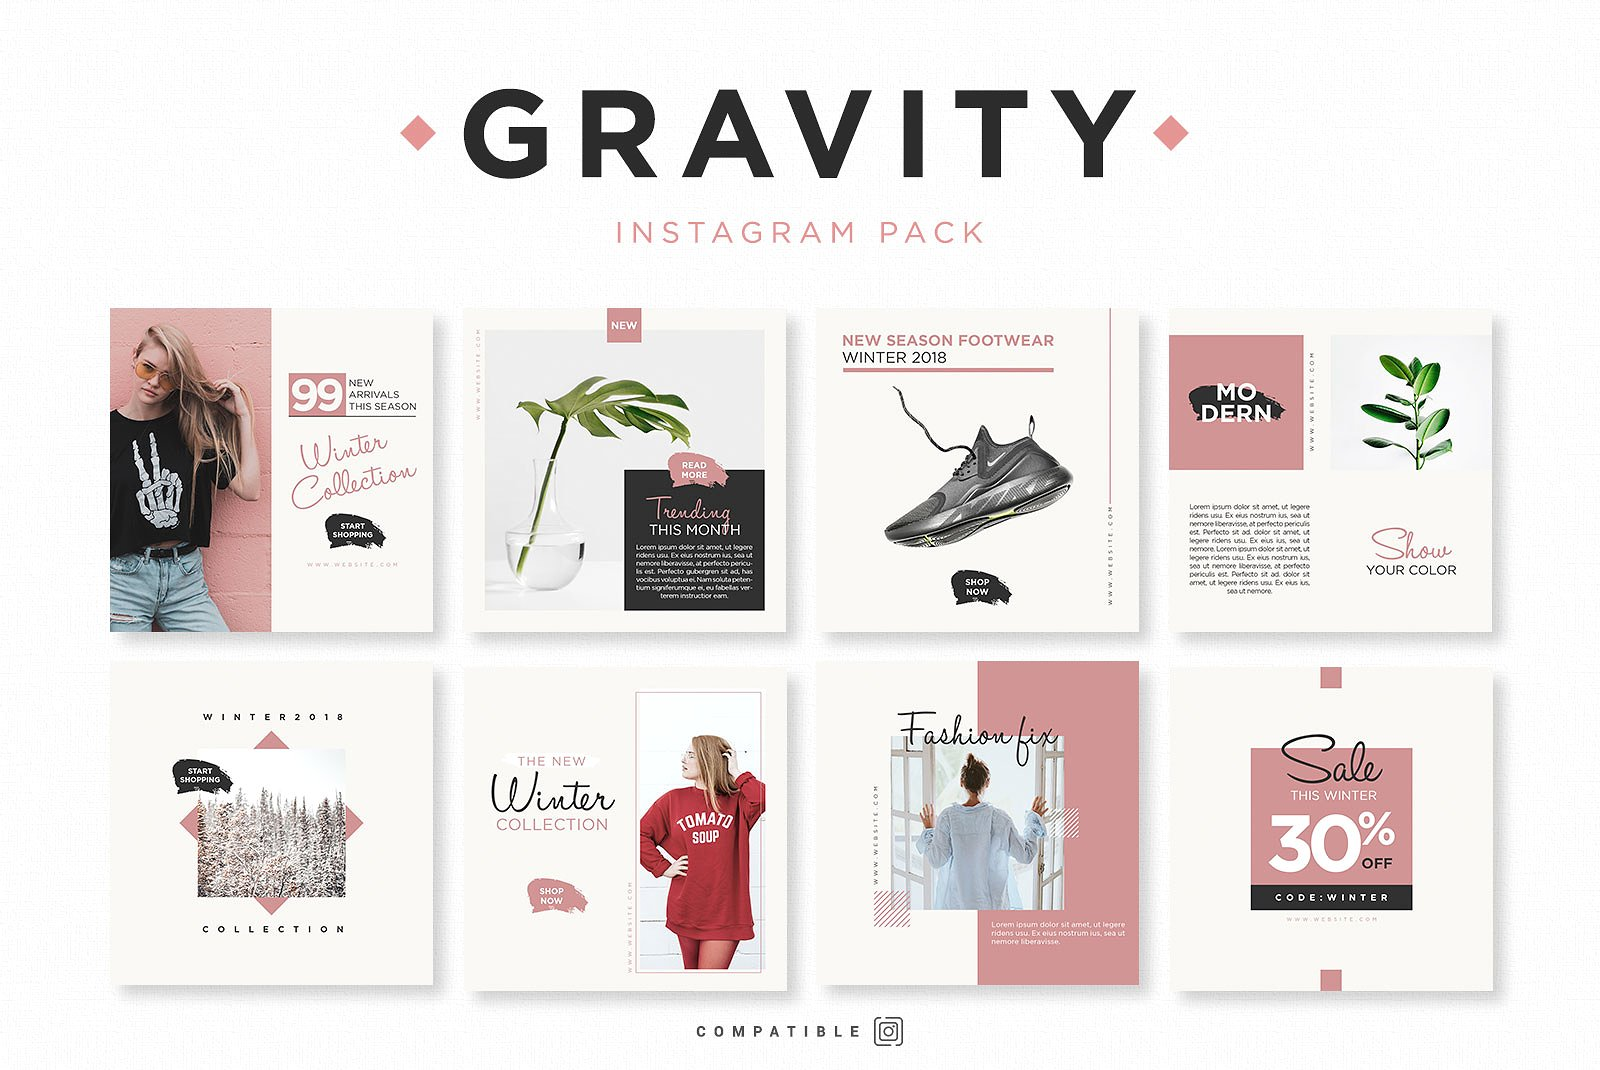 Gravity Instagram Pack Graphic Web Elements By wally6484